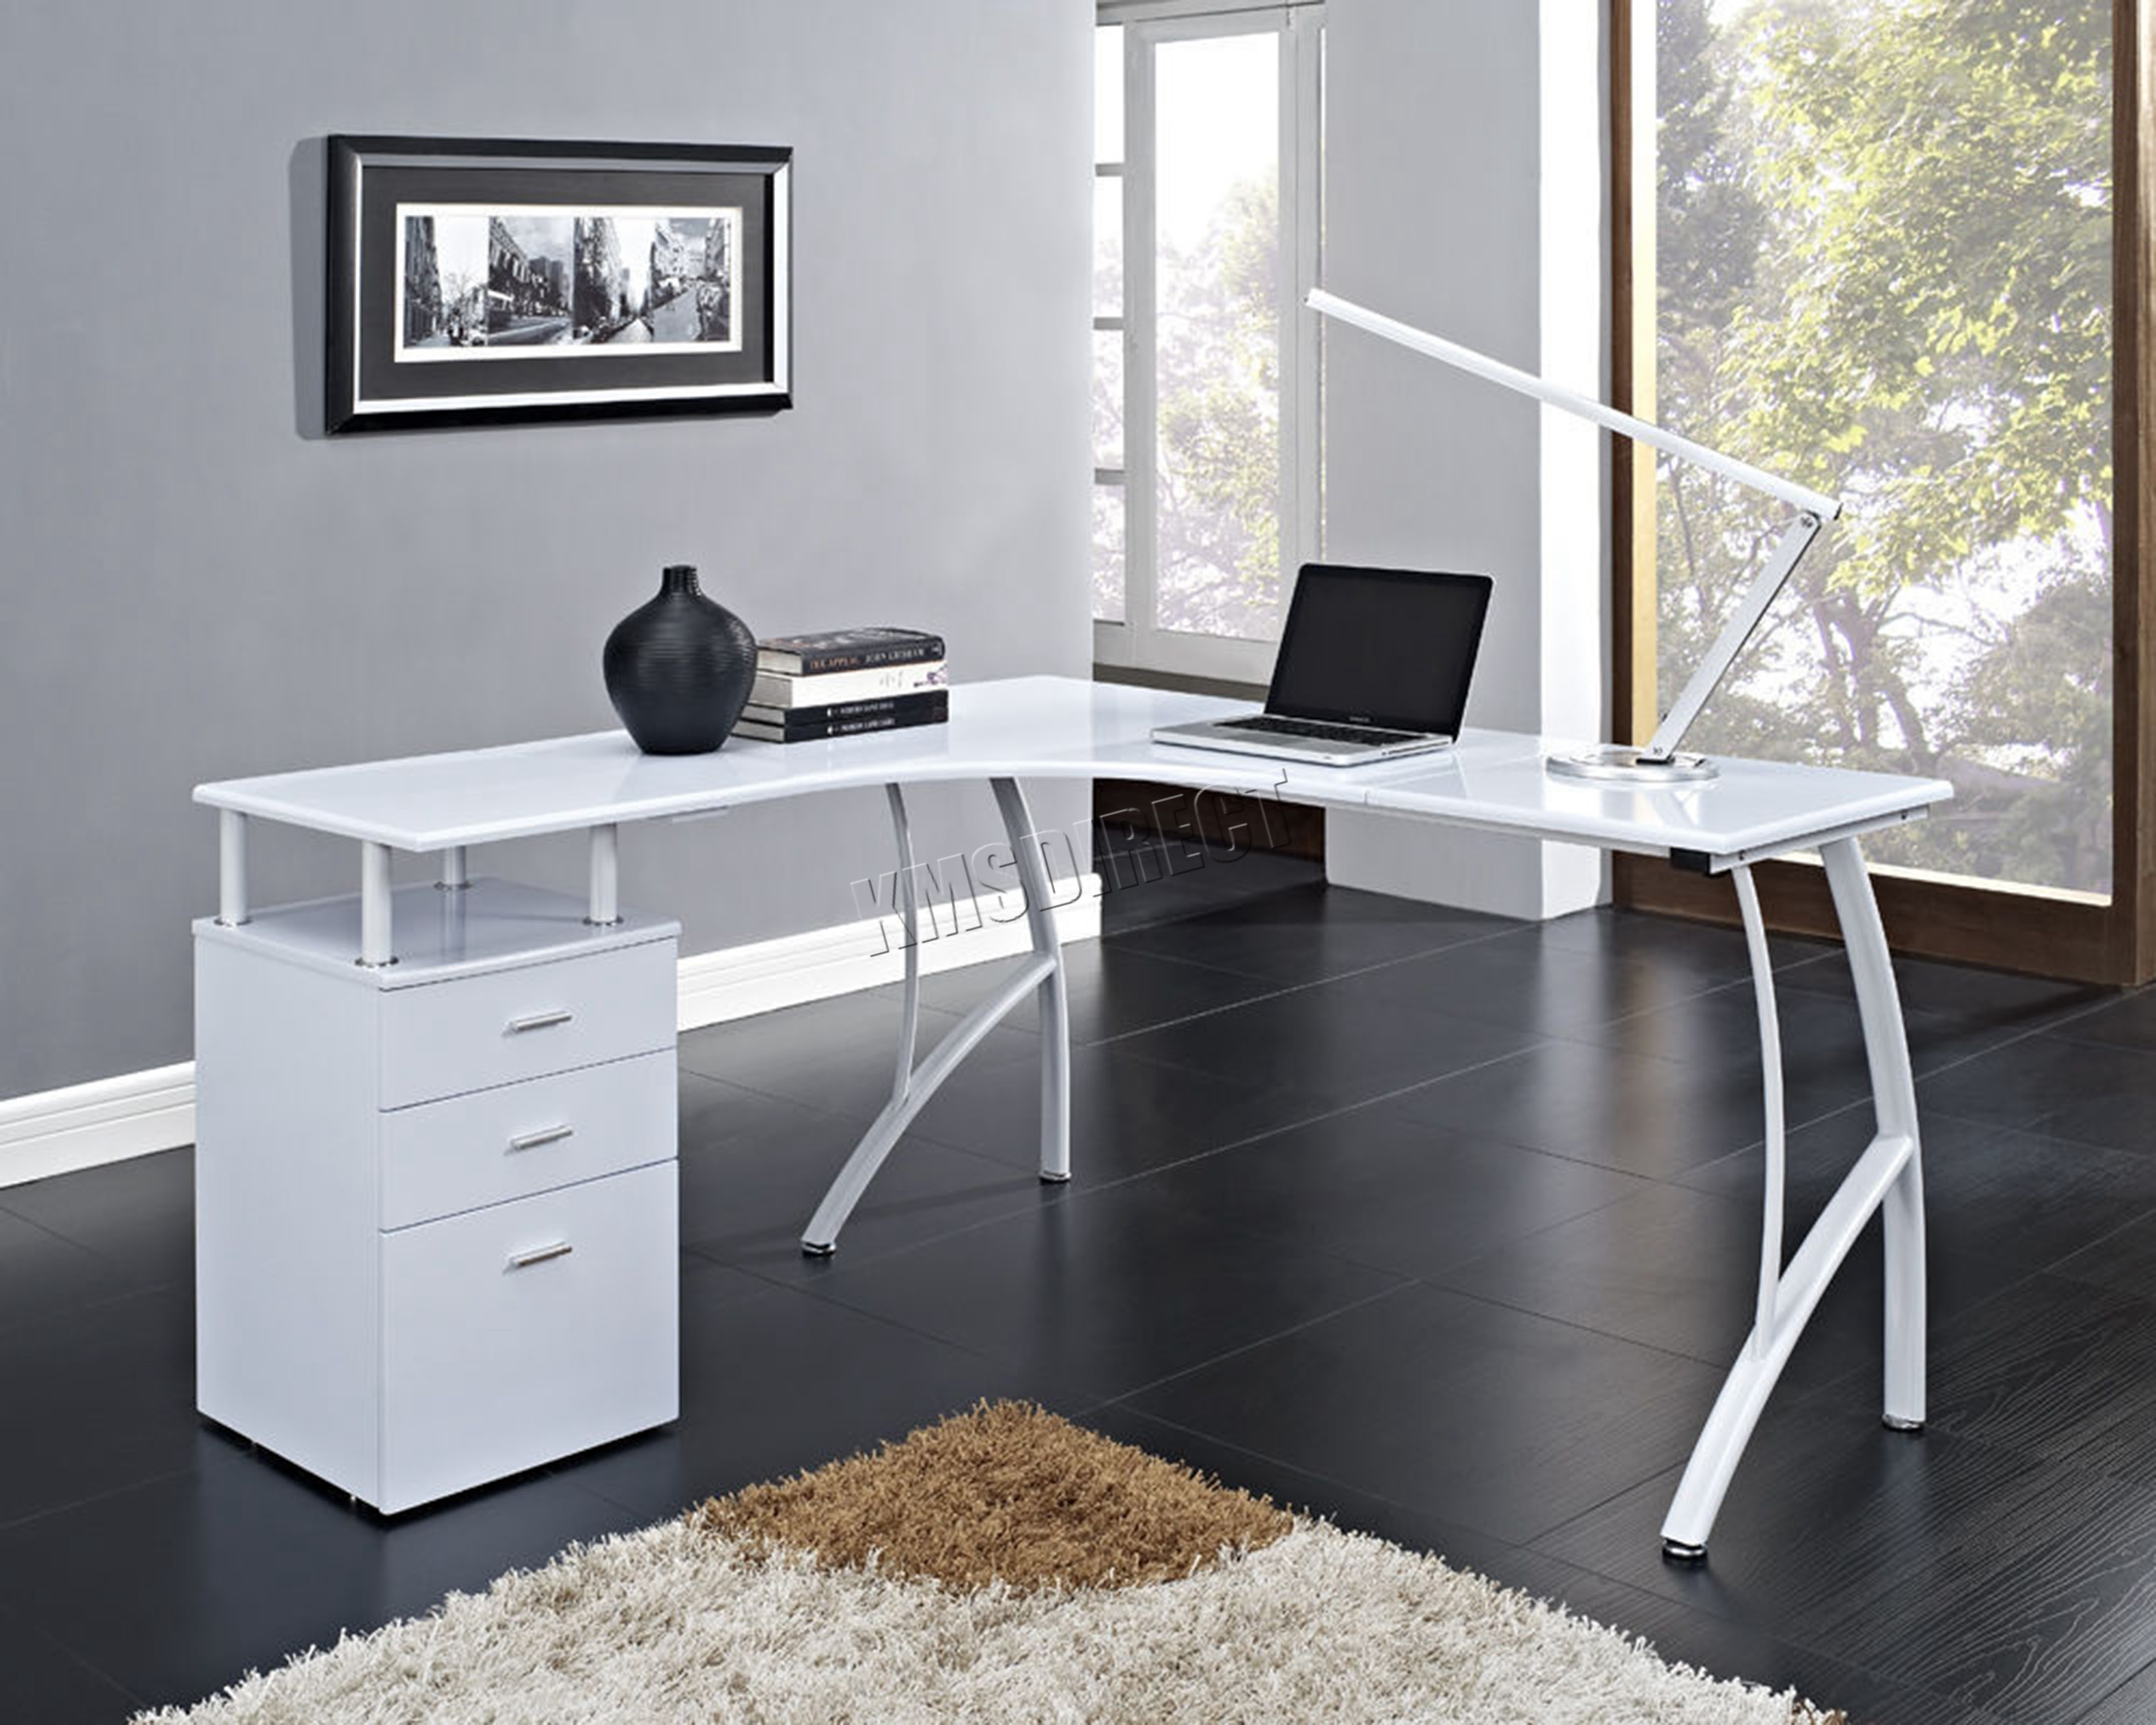 FoxHunter LShaped Corner Computer Desk PC Table Home Office Study CD04 White